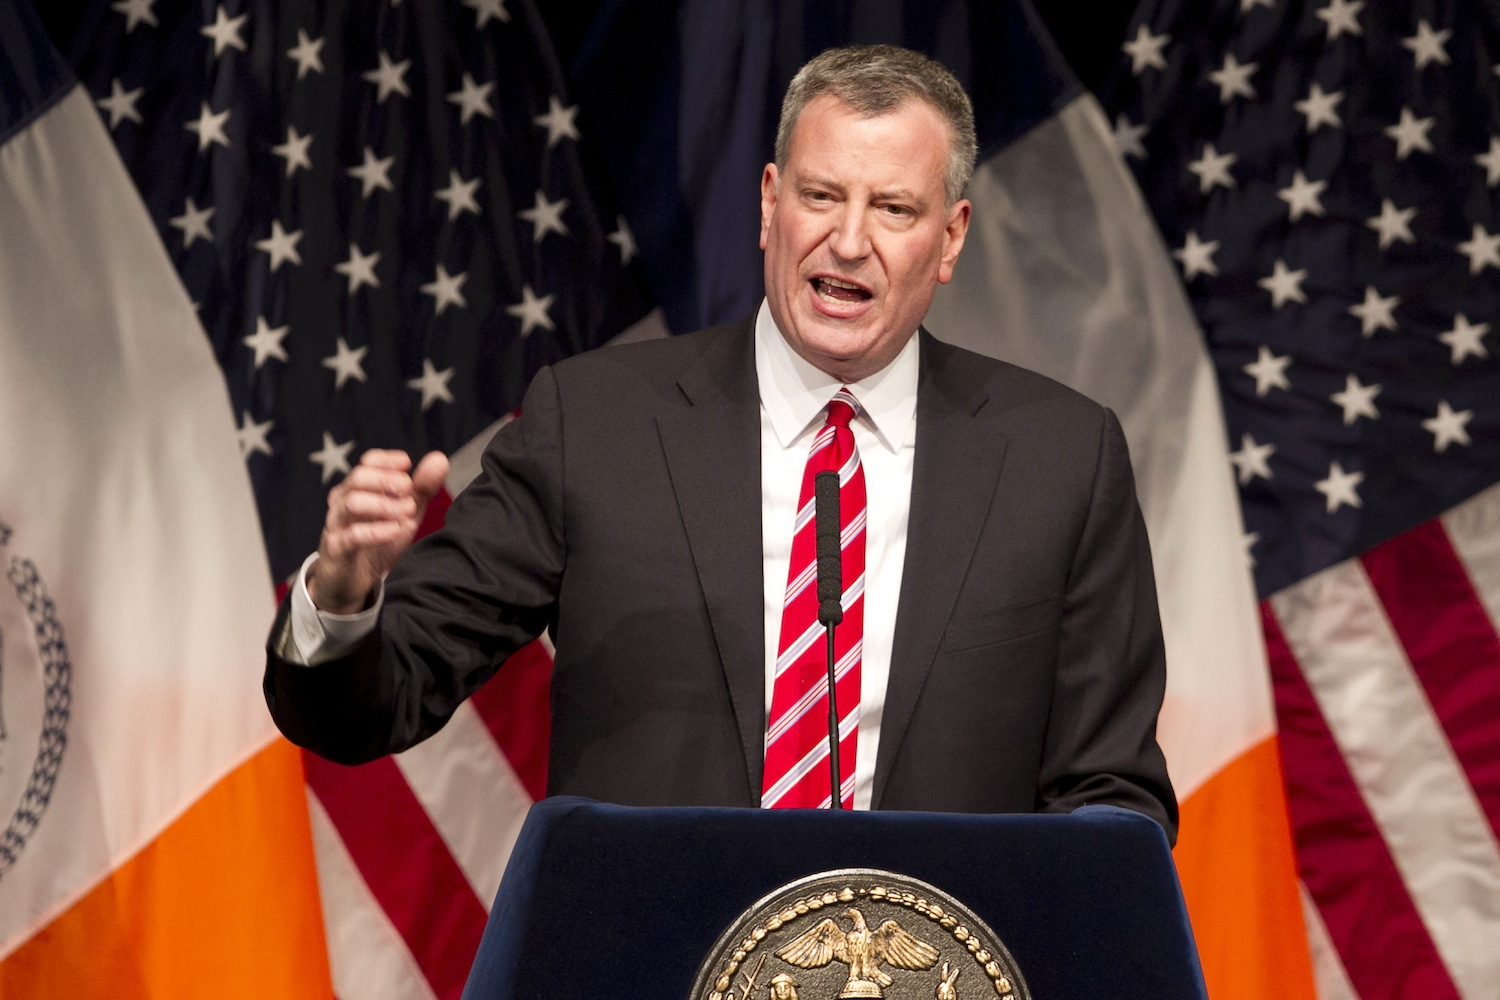 De Blasio Pledges A/C Units for All Classrooms Starting This Summer